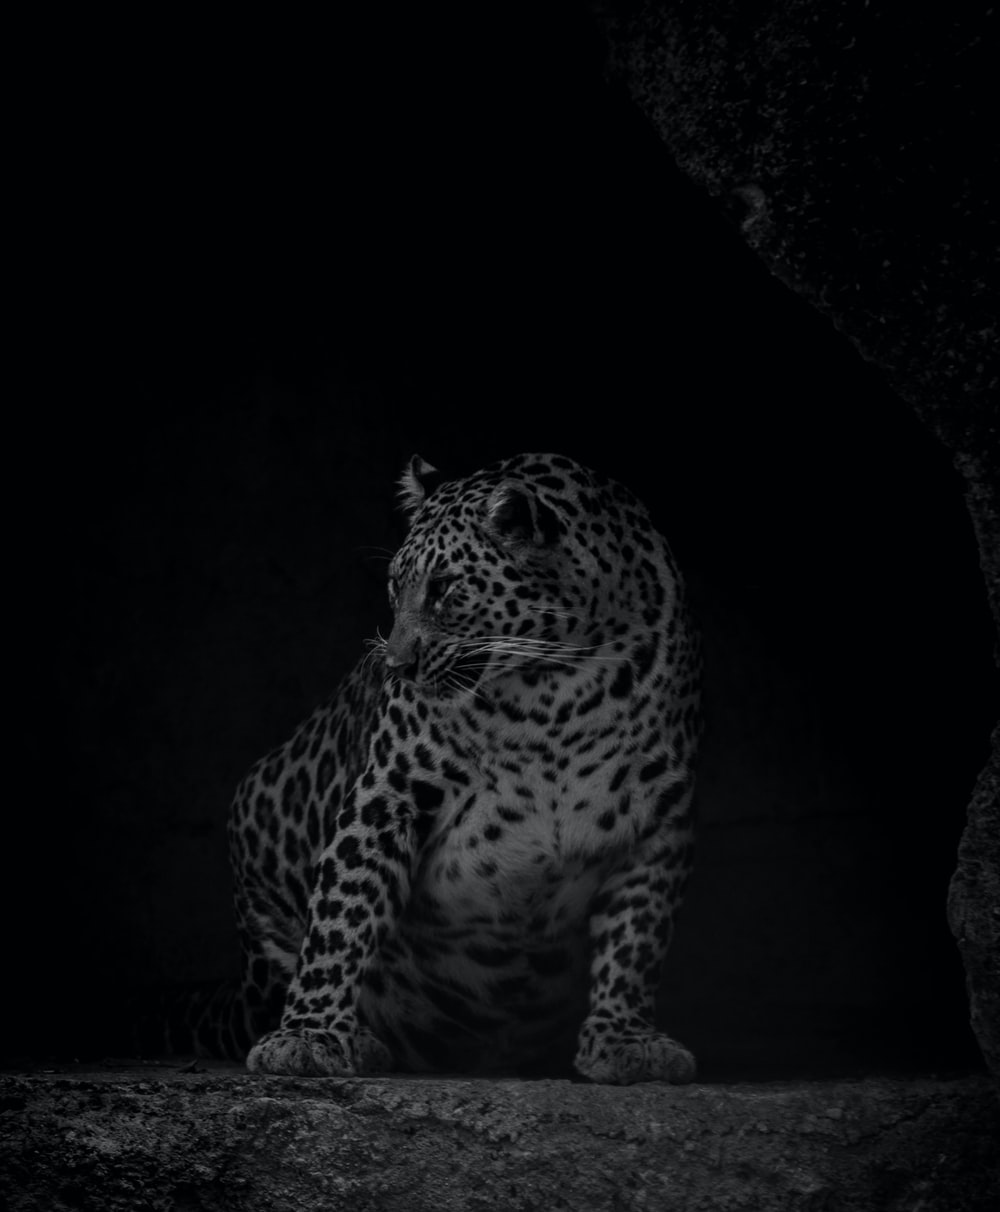 leopard on black cave during night time